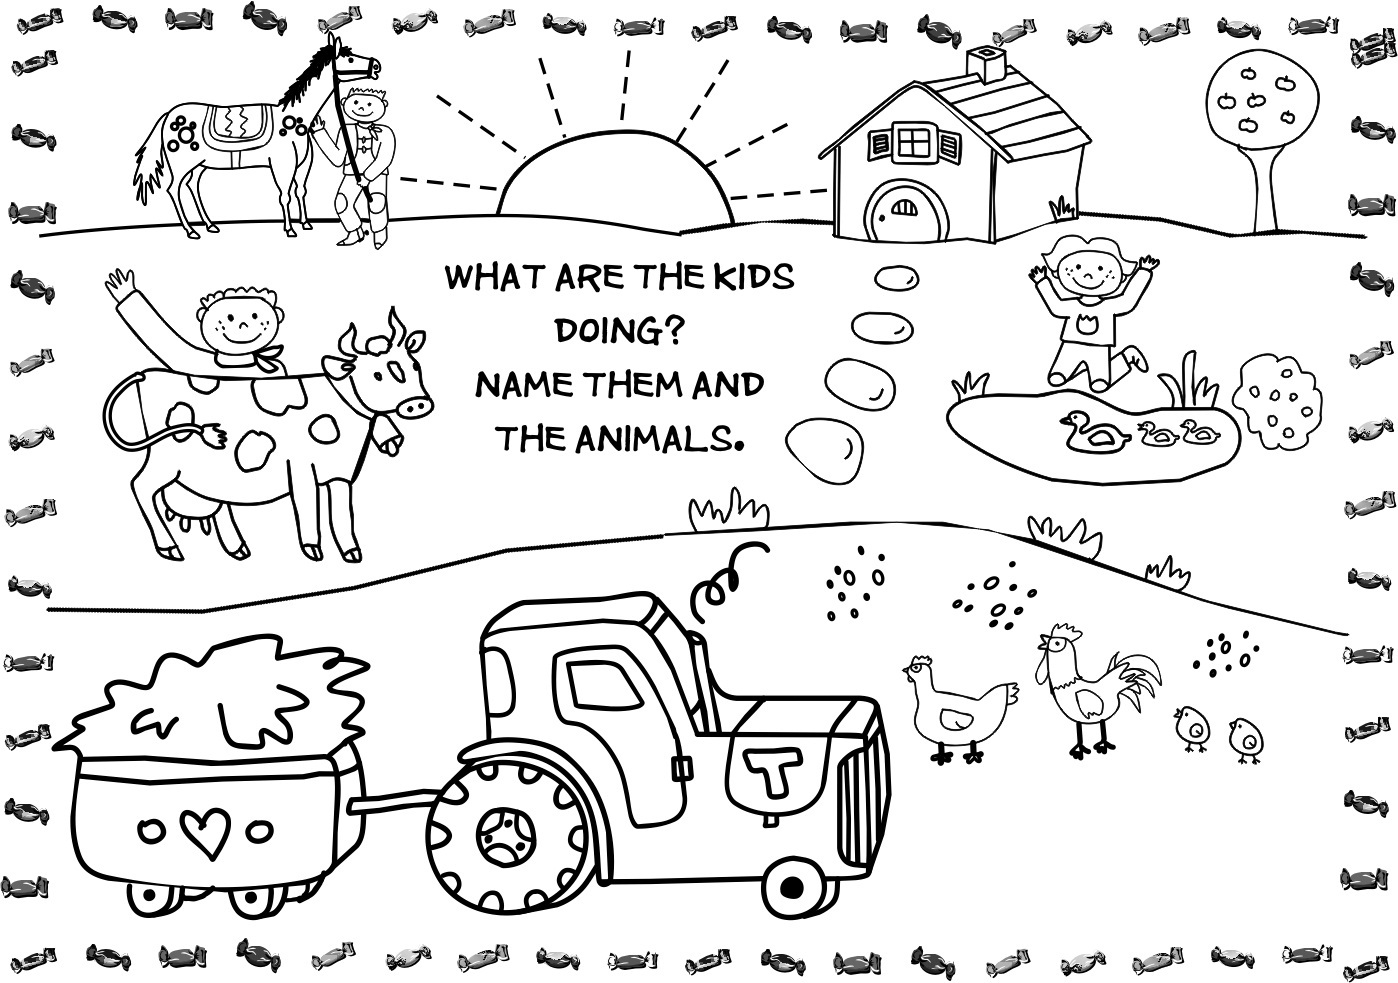 Farm Animal Coloring Pages Sheets  karliejustuscom